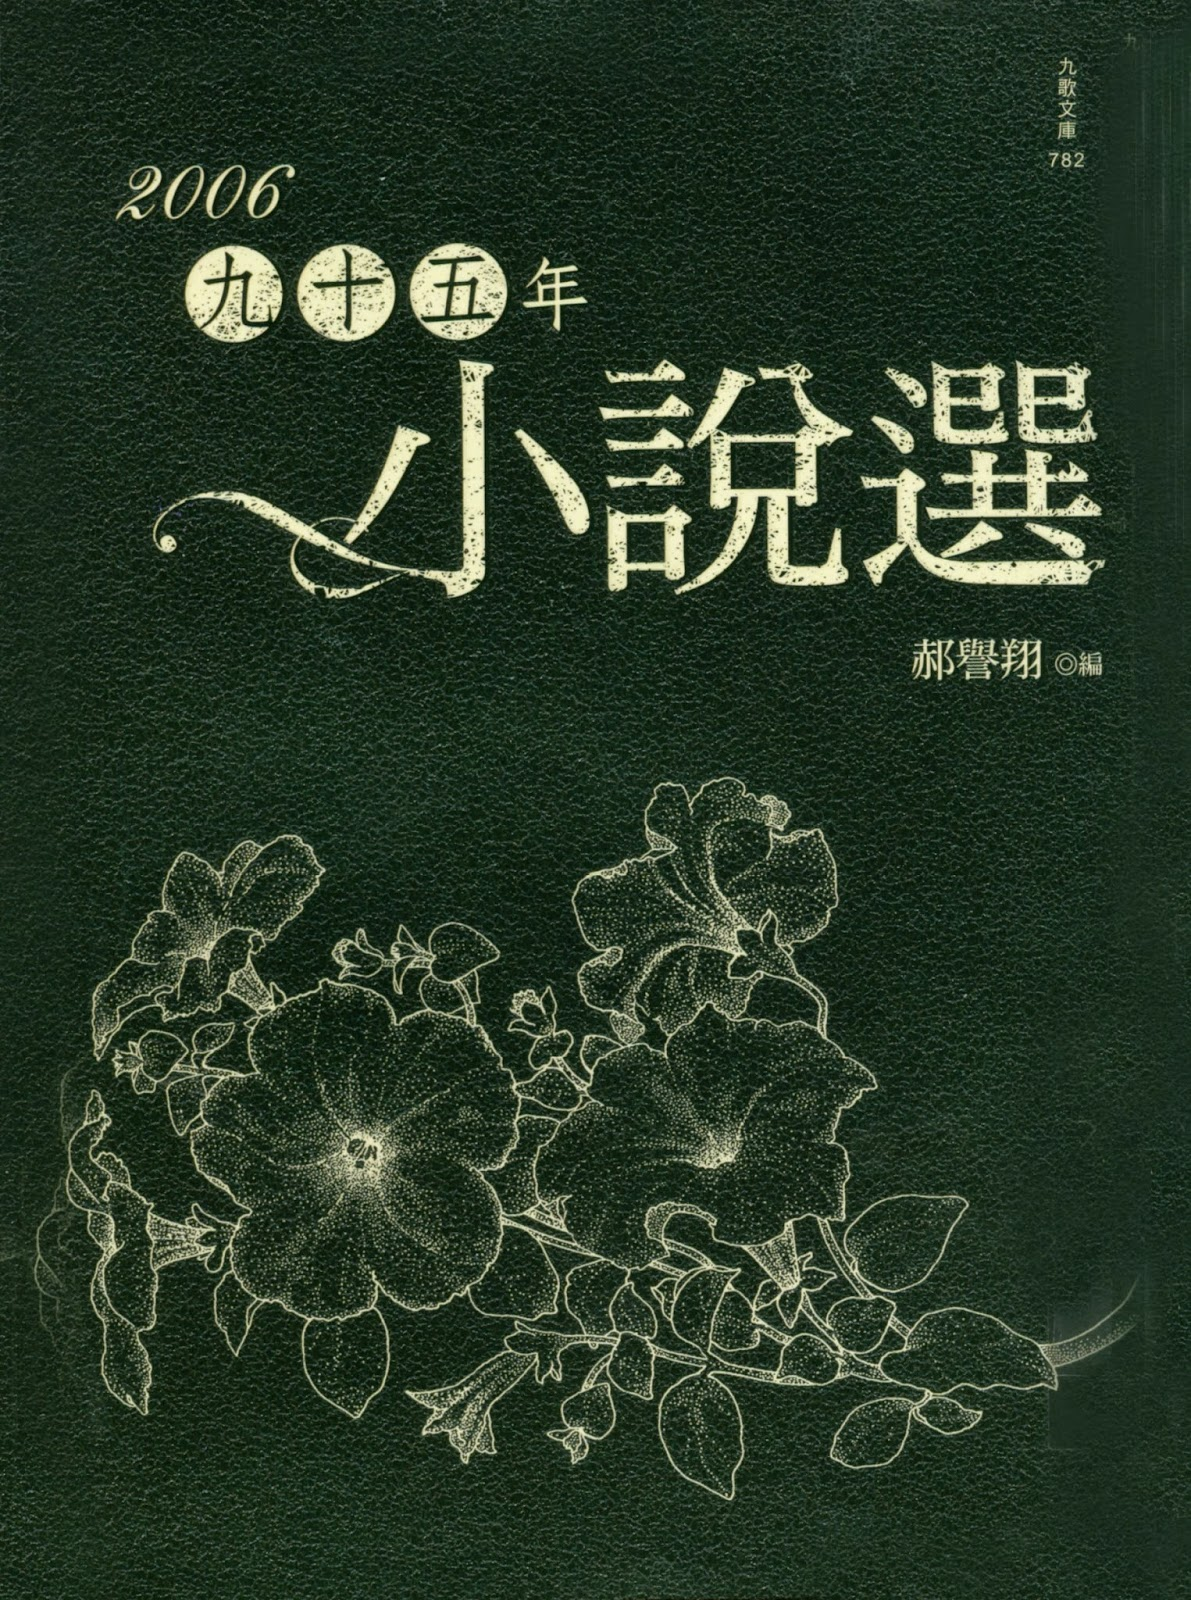 <i>Selected Novellas in the Year Ninety-Five</i>《九十五年小說選》